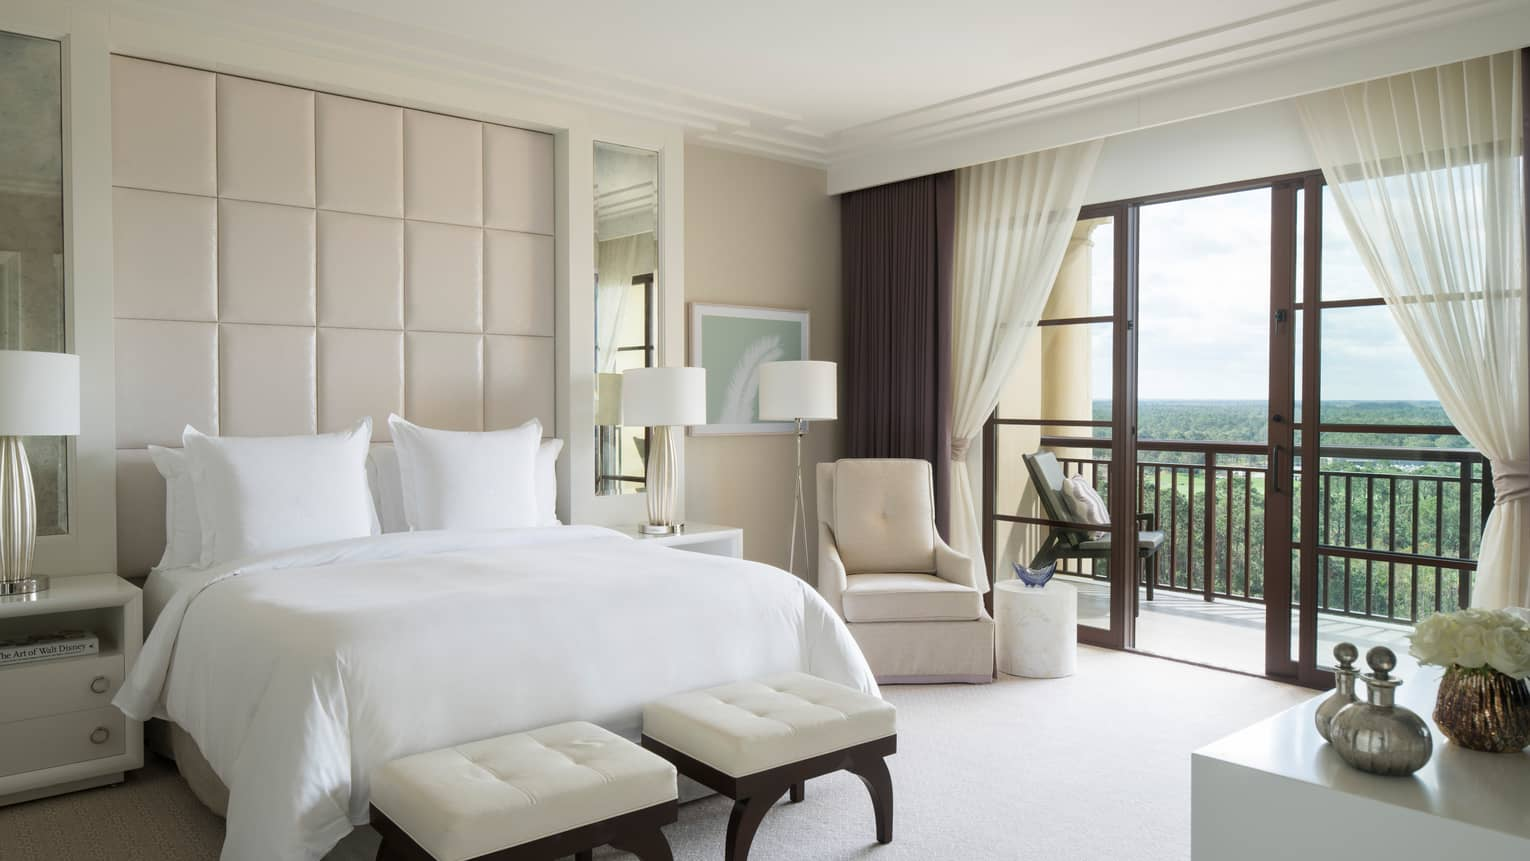 Grand Suite bed against white padded wall, bench, white armchair by windows with sheer curtains